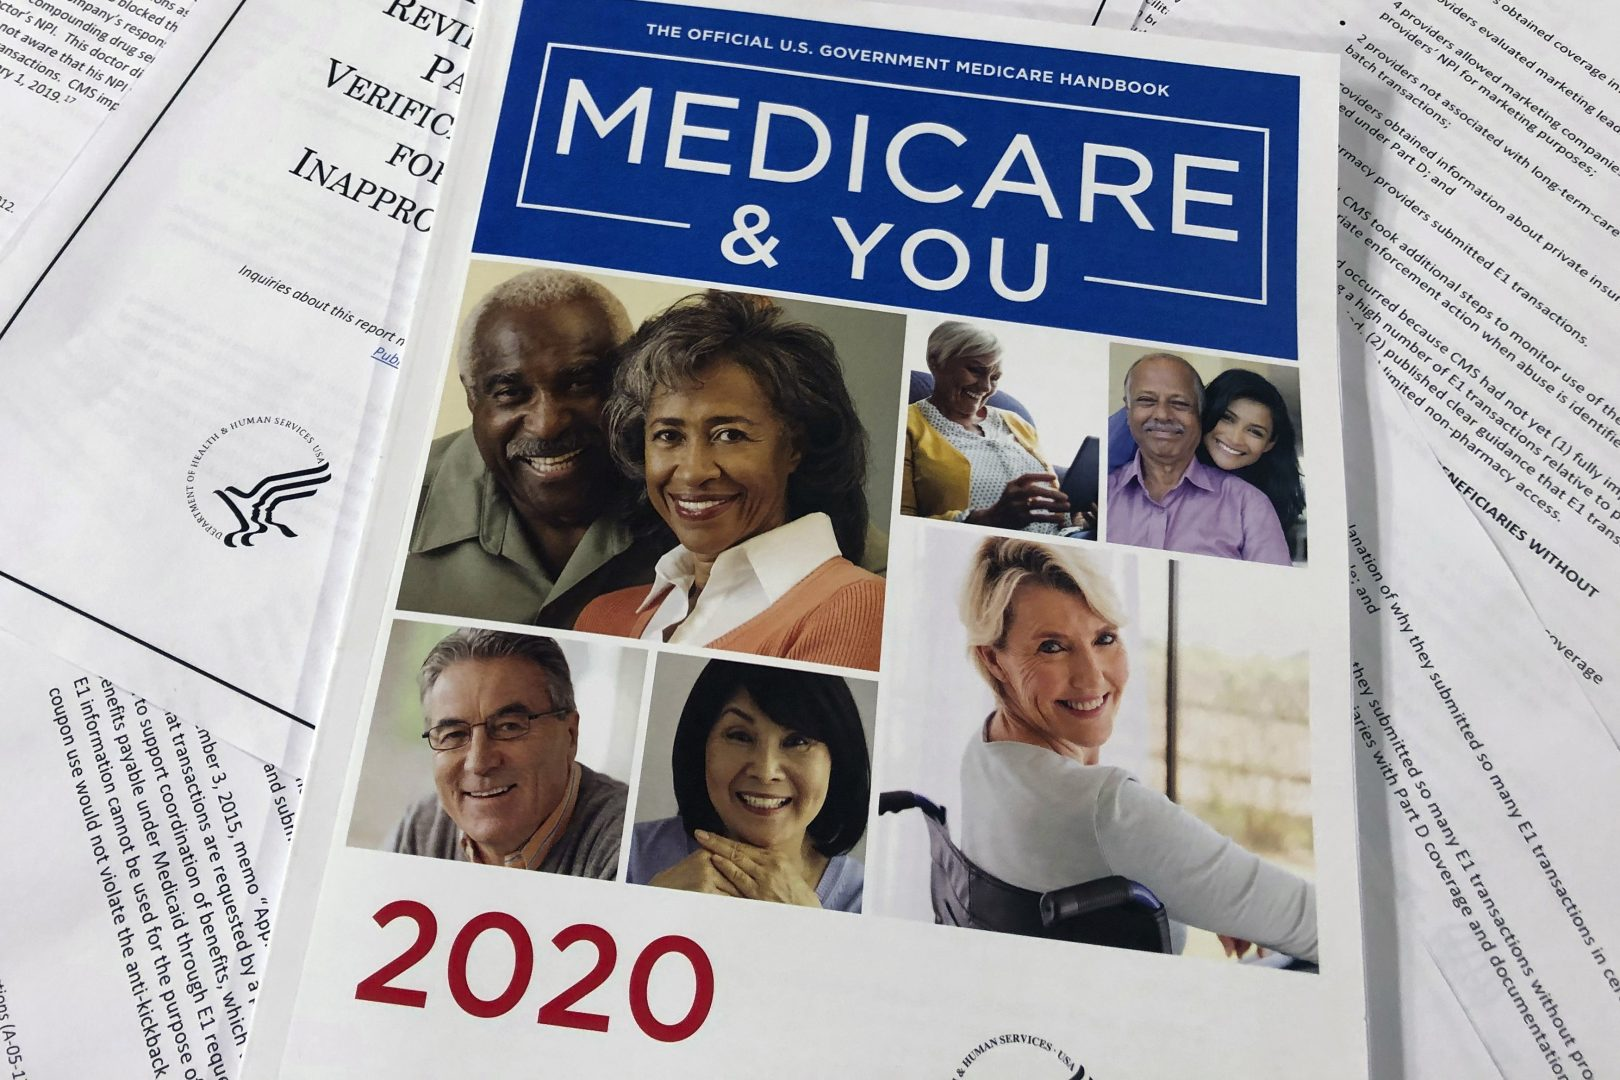 FILE PHOTO: In this Feb. 13, 2020, file photo, The Official U.S. Government Medicare Handbook for 2020 over pages of a Department of Health and Human Services, Office of the Inspector General report, are shown in Washington.